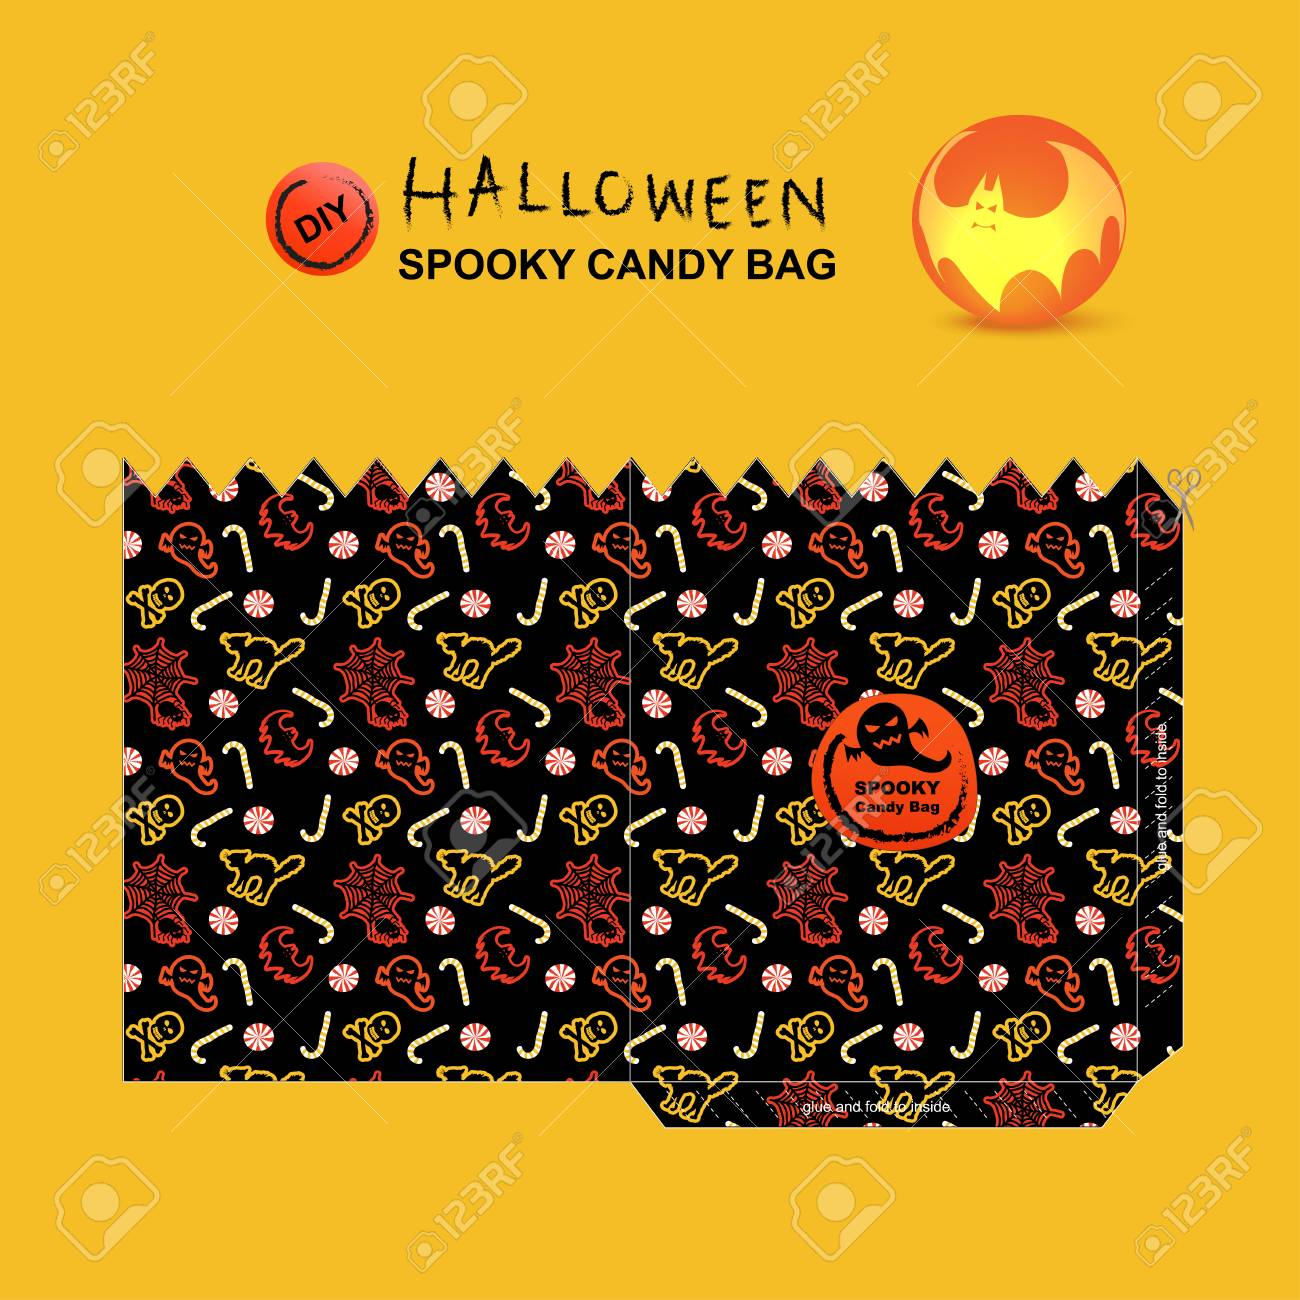 Diy Halloween Trick Or Treat Bags.A Diy Halloween Spooky Candy Bag And Trick Or Treat Candy Bag